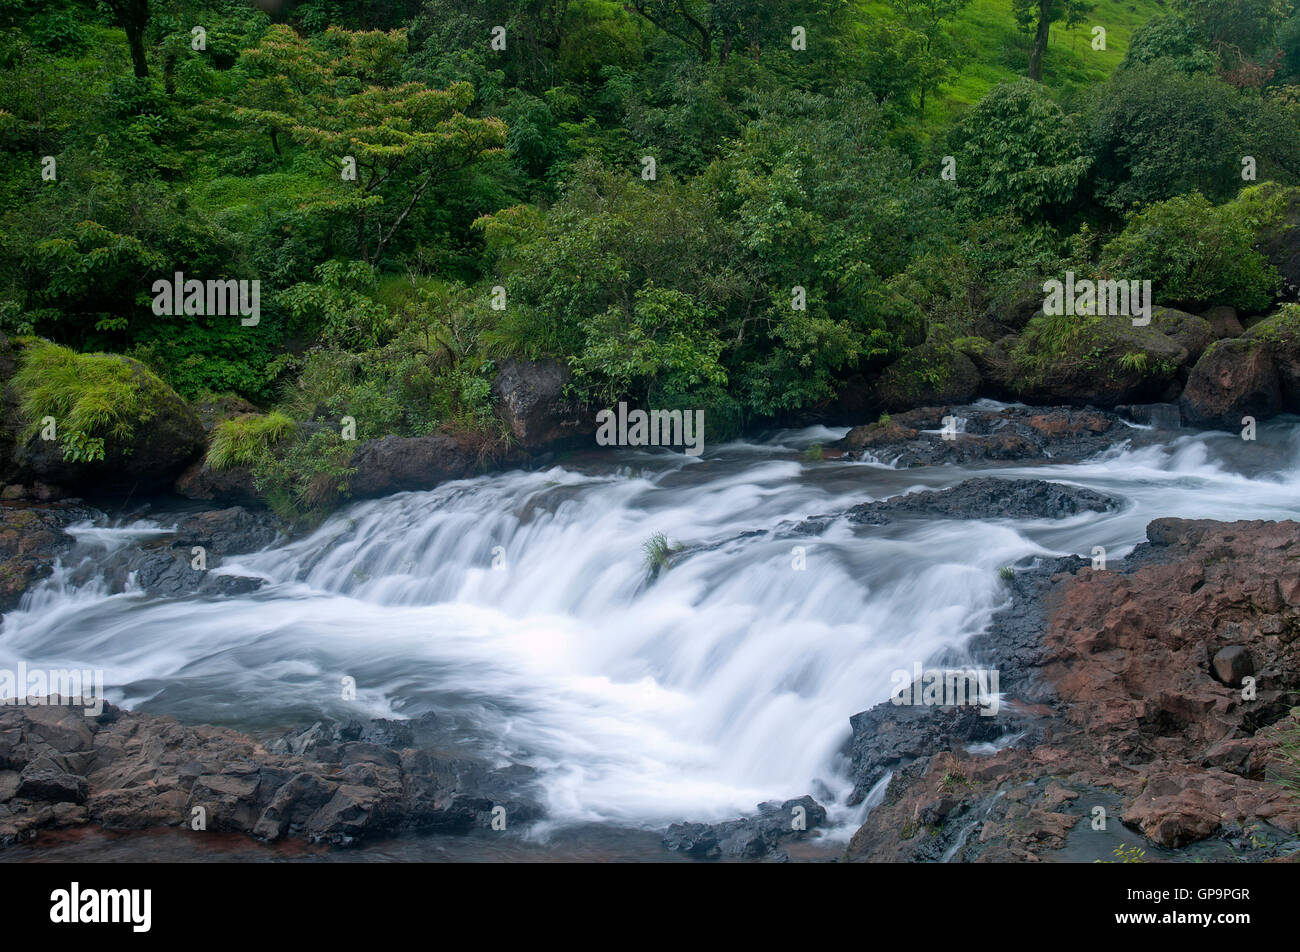 The image of Stream in Satara, Maharashtra, western ghats, monsoon, India - Stock Image